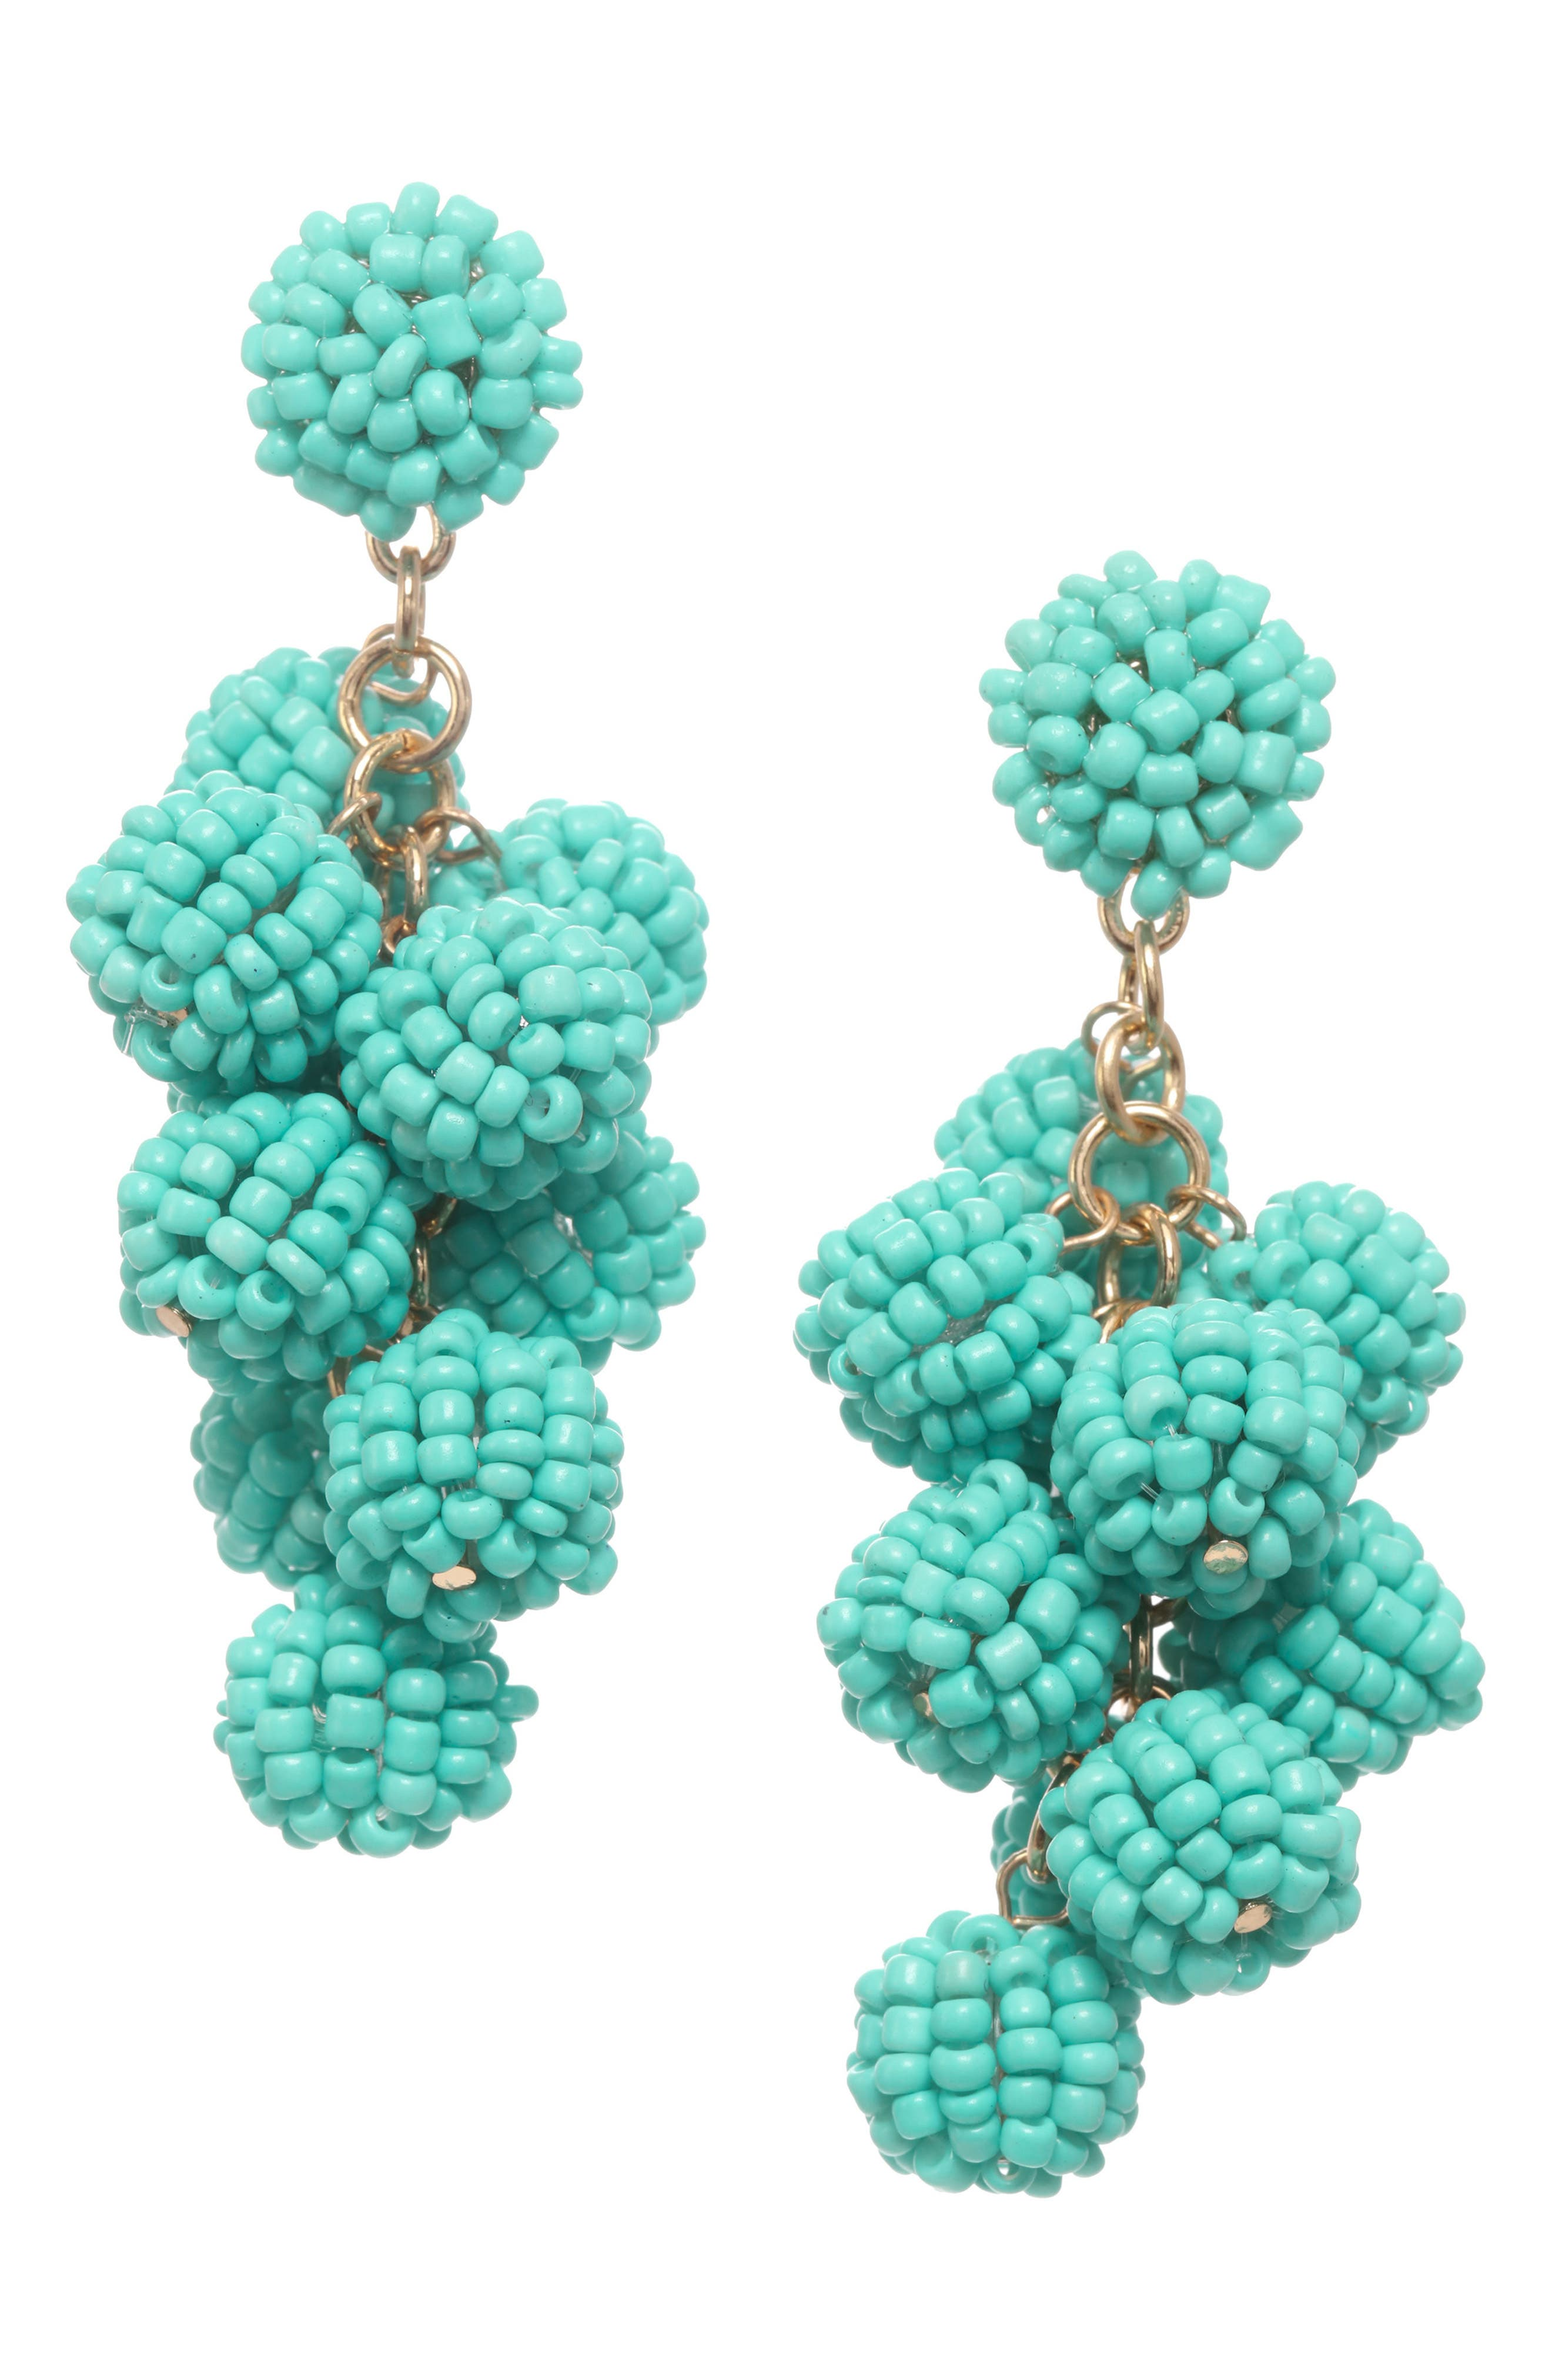 Bauble Cluster Earrings,                         Main,                         color, 710